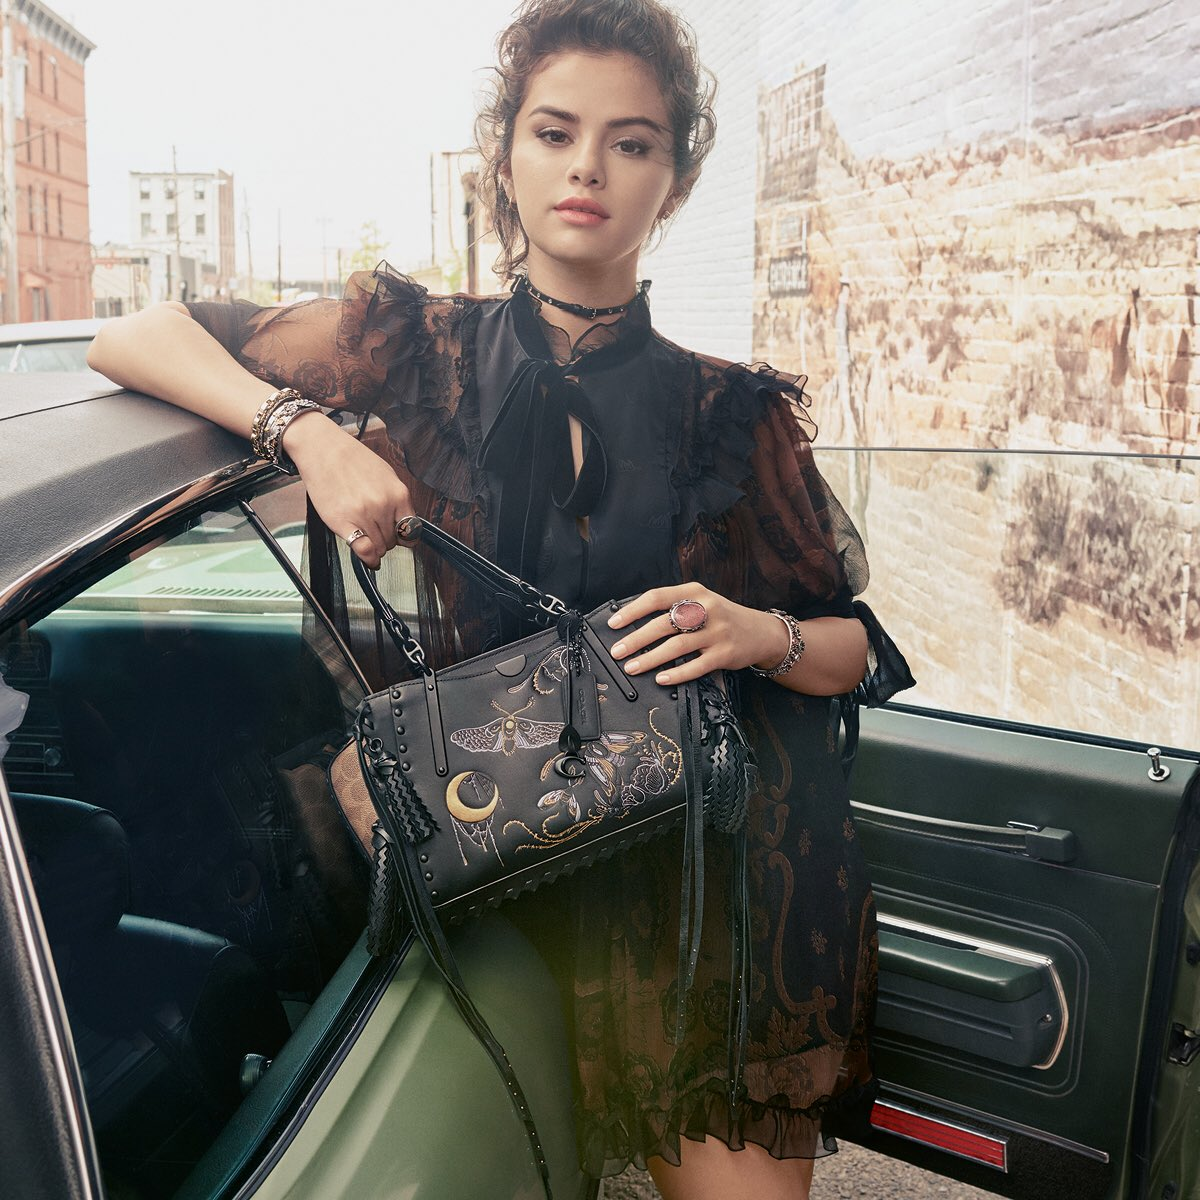 Introducing #SelenaGomez, with our new Dreamer bag, photographed by #StevenMeisel for the #CoachFW18 campaign. #CoachxSelena #CoachNY